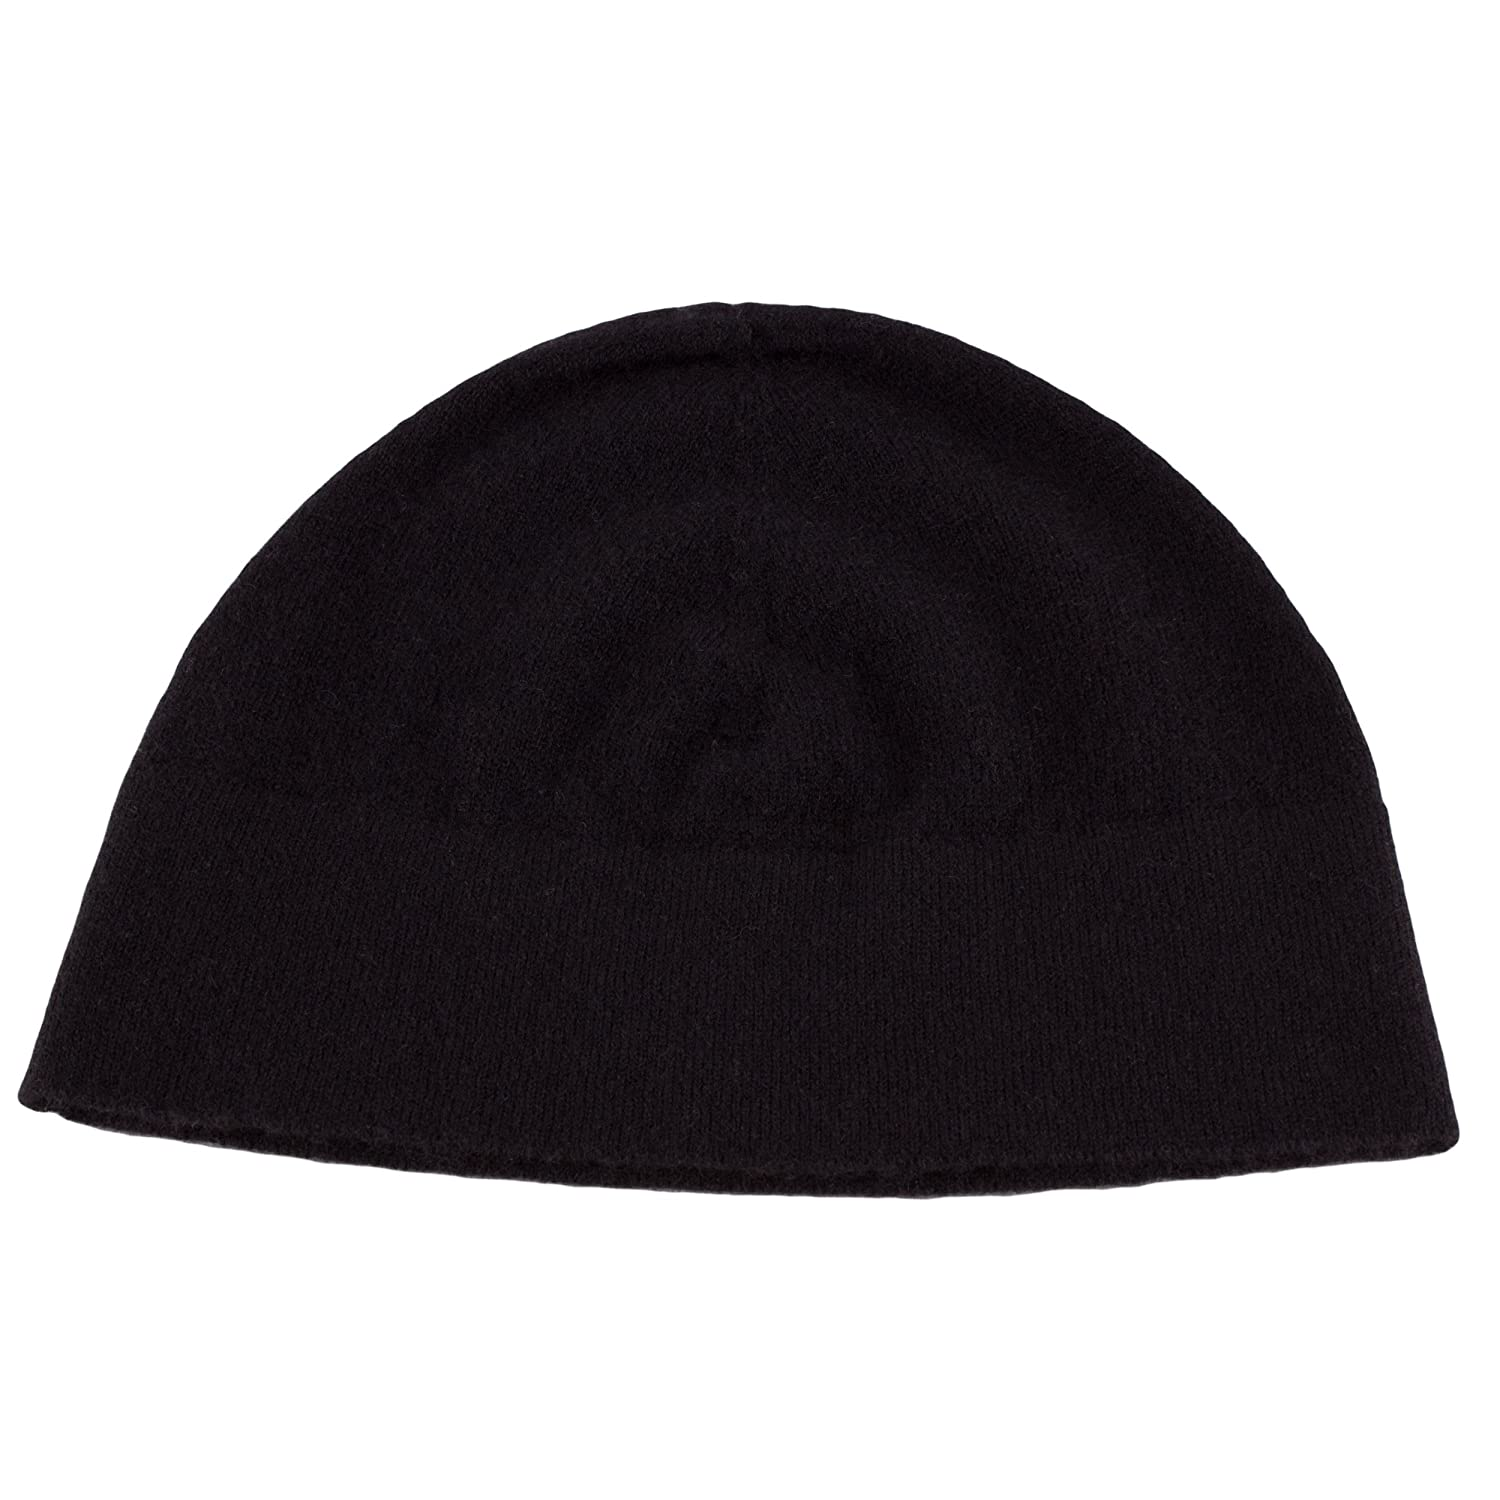 dae56559a13 Love Cashmere Mens 100% Cashmere Watch Cap Beanie - Black - Made in Scotland  RRP  130 at Amazon Men s Clothing store